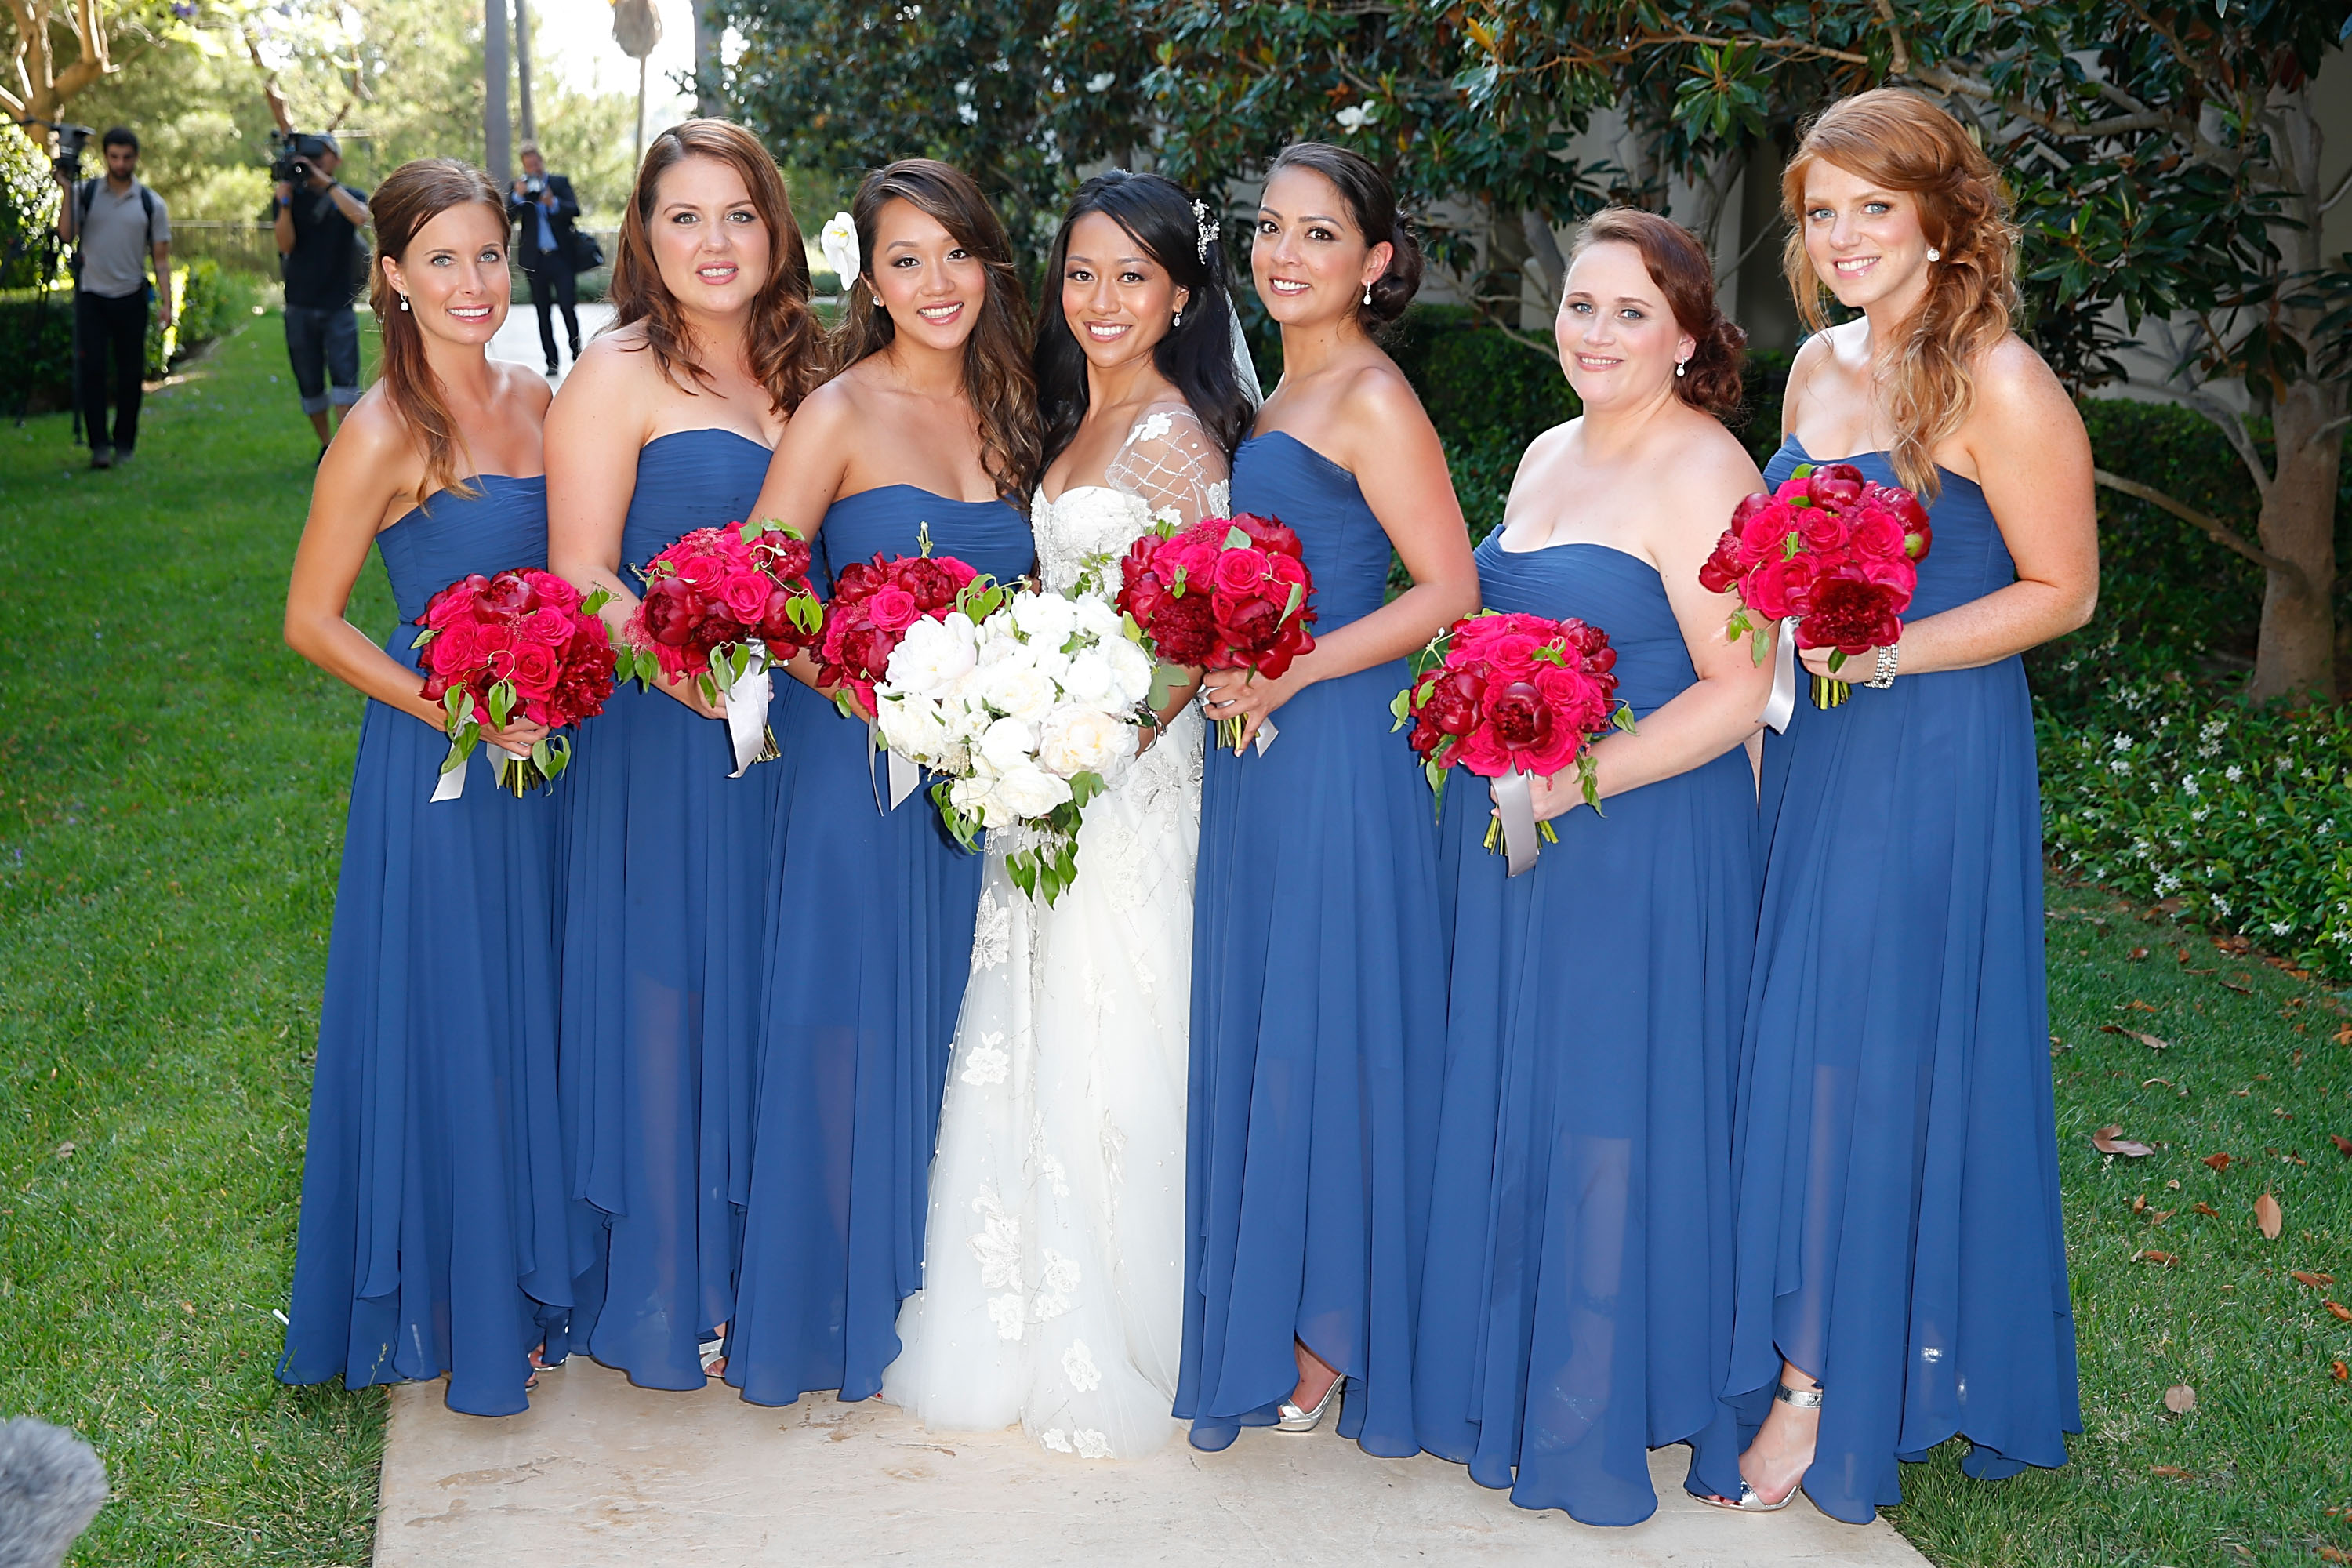 6 Reasons Bridesmaid Dresses Are The Absolute Worst And Should Be Banned Forever